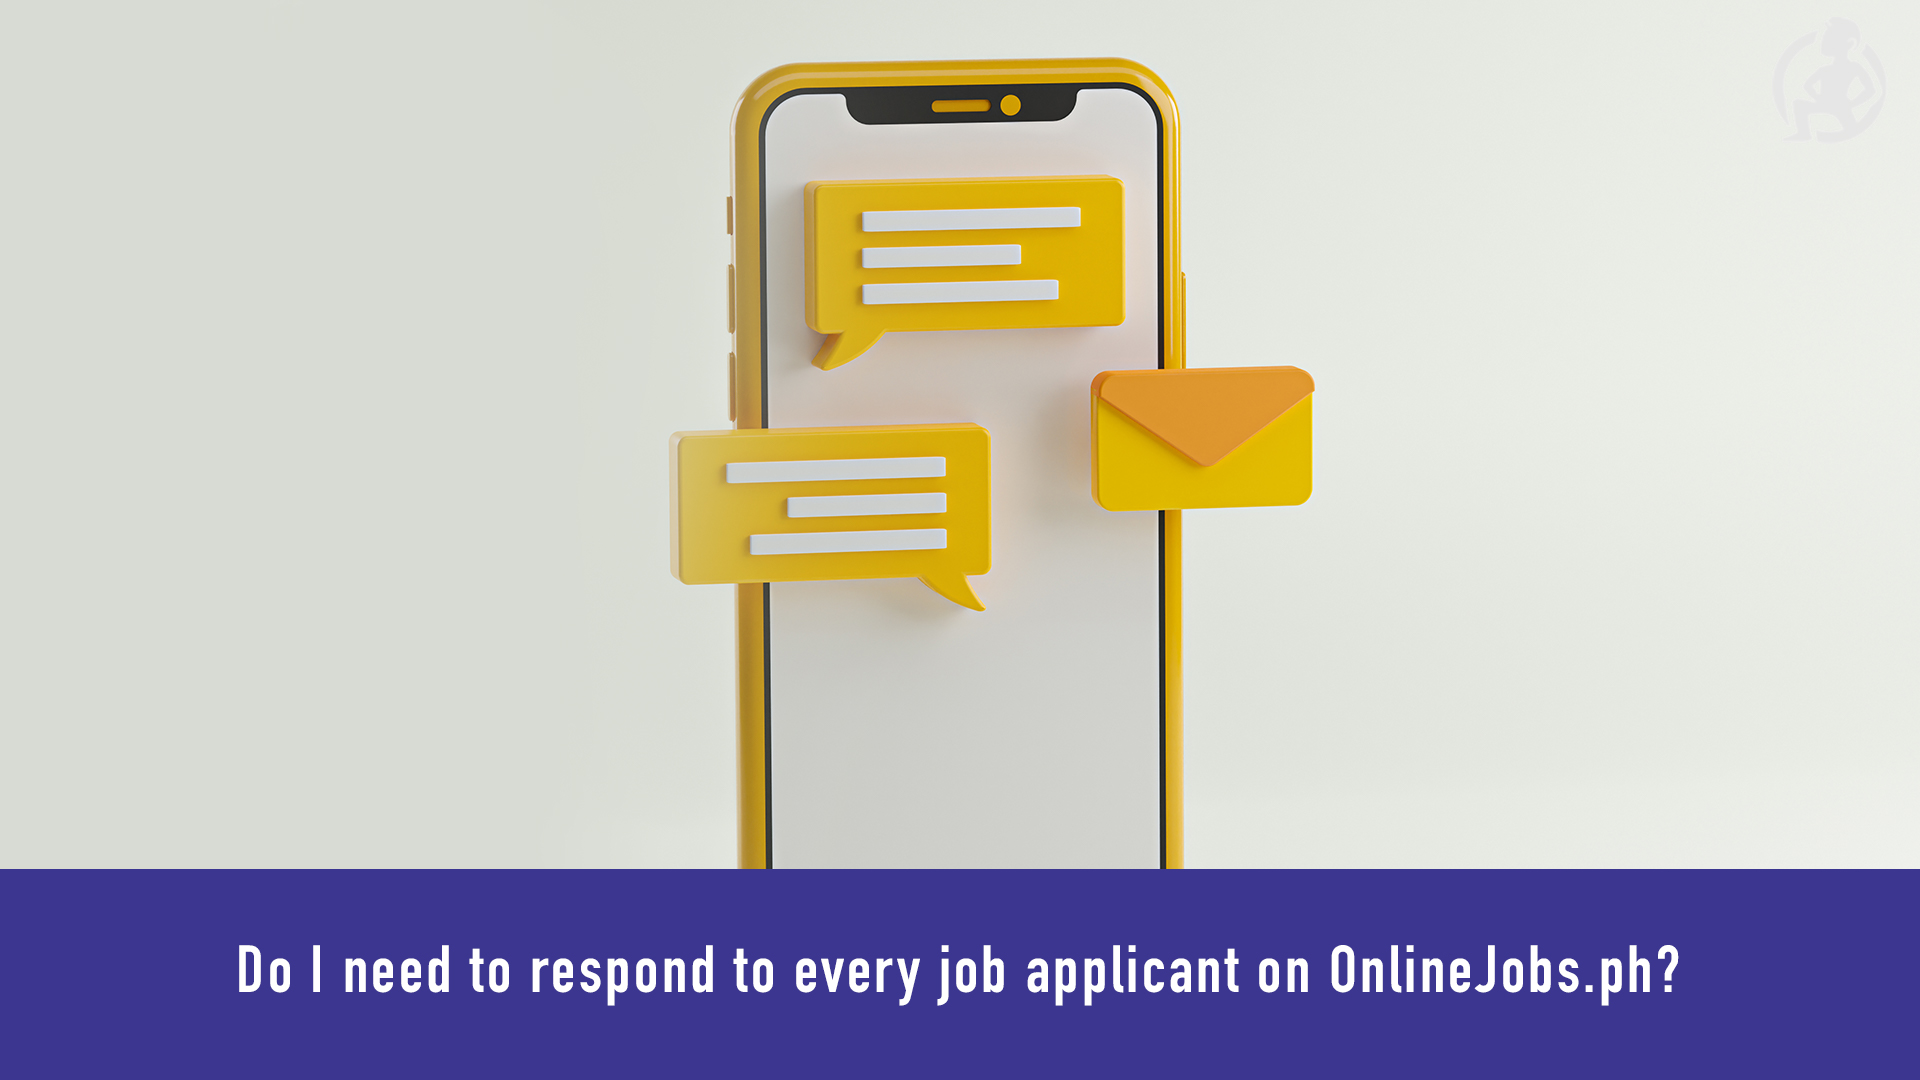 Do I Need to Respond to Every Job Applicant on OnlineJobs.ph? – Practical Advice